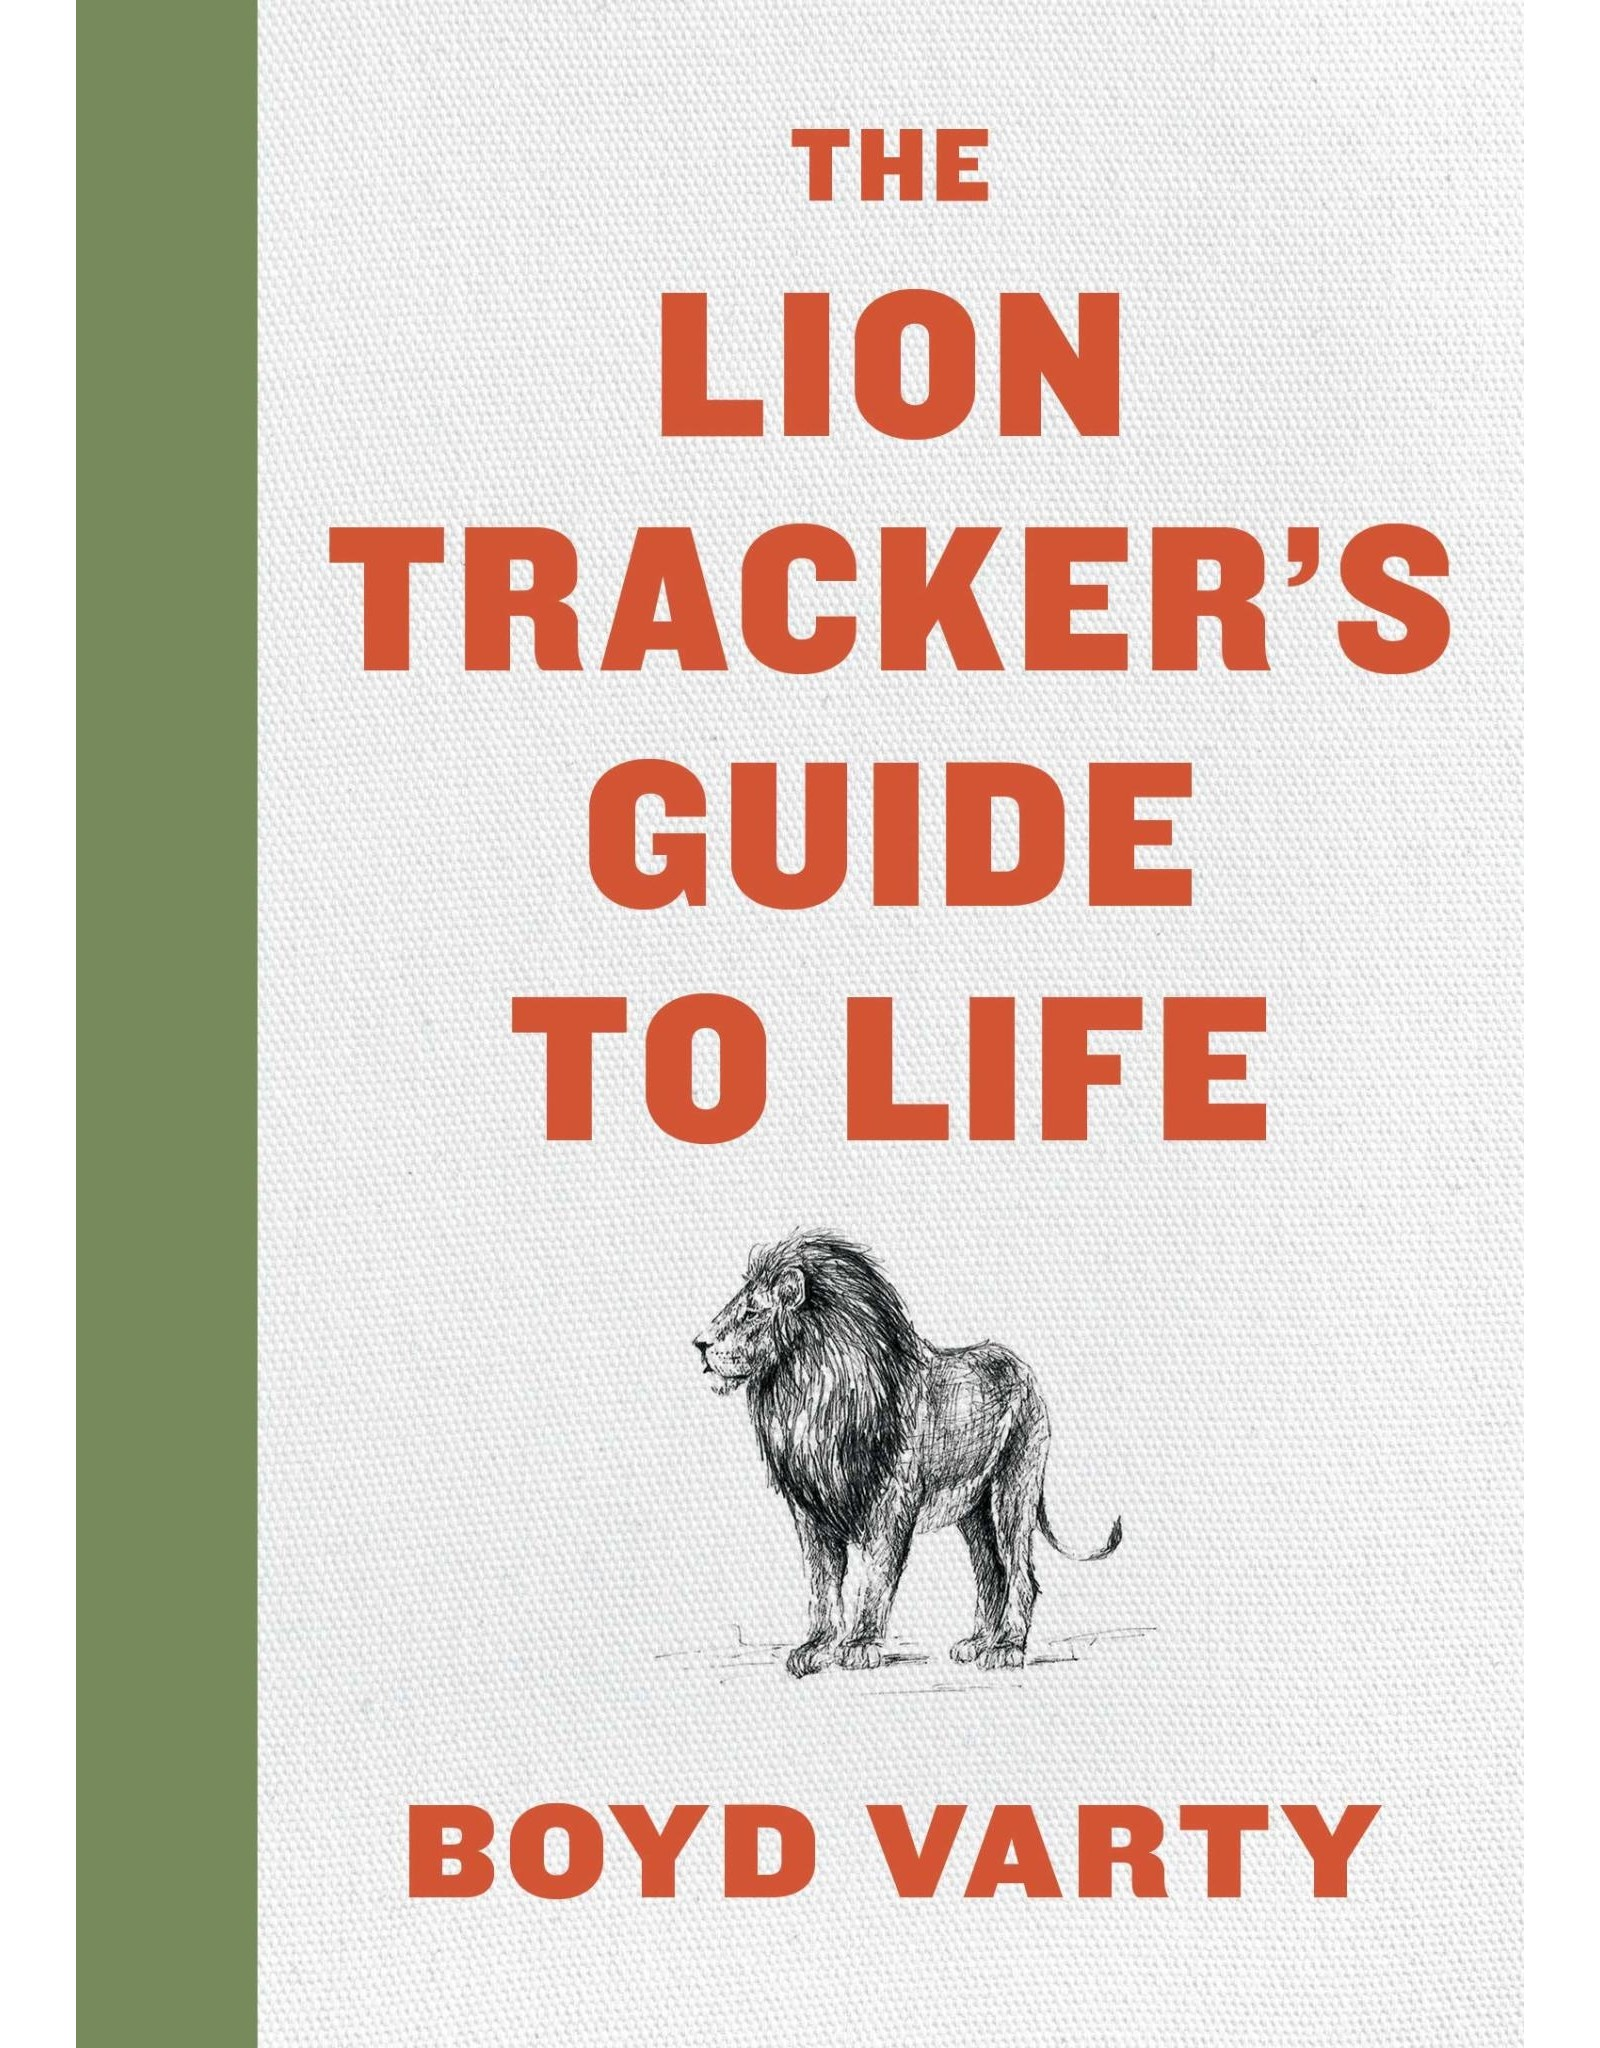 LION TRACKERS GT LIFE